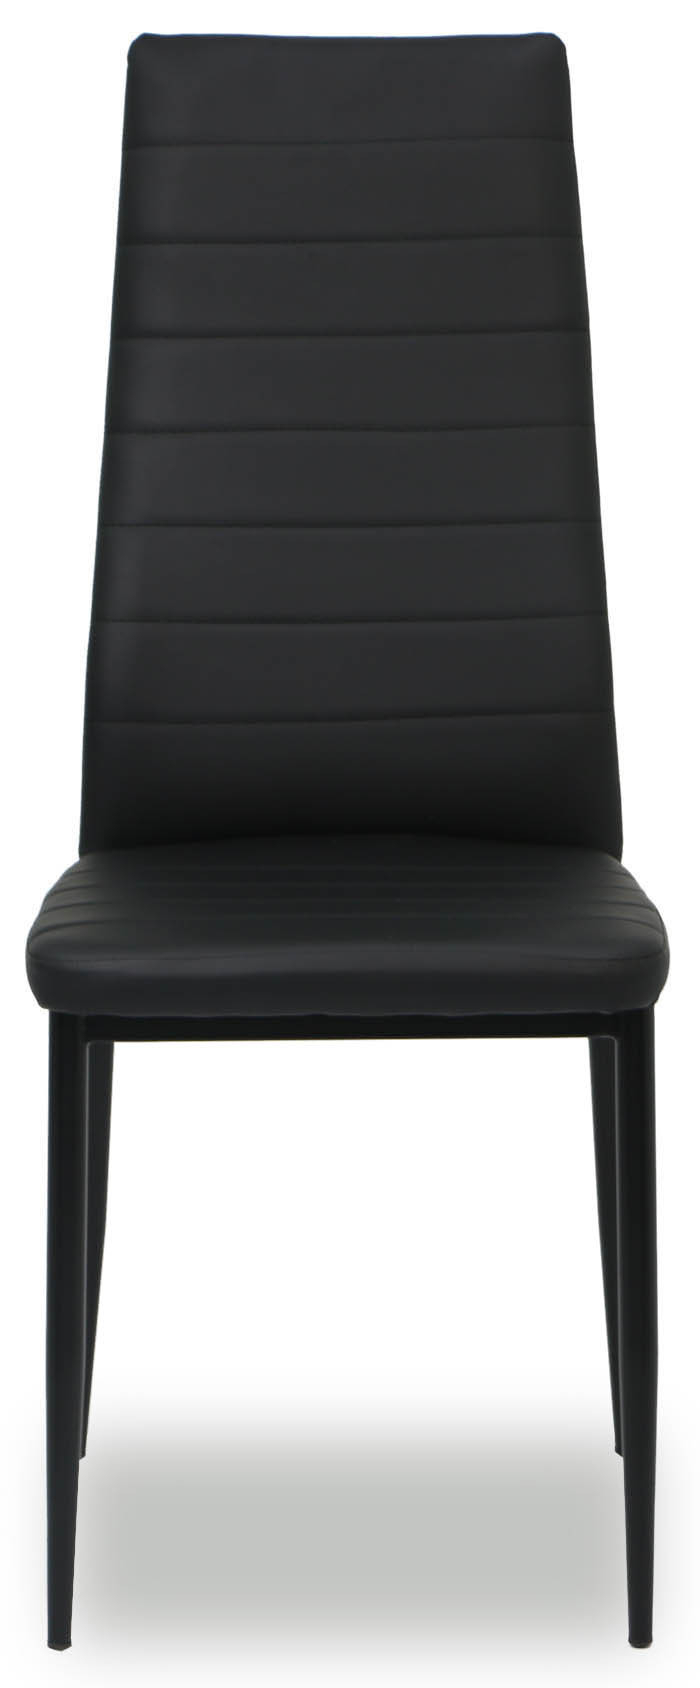 Quinn Dining Chair Black | Furniture & Home Décor | Fortytwo In Quinn Teak Sofa Chairs (Image 9 of 25)